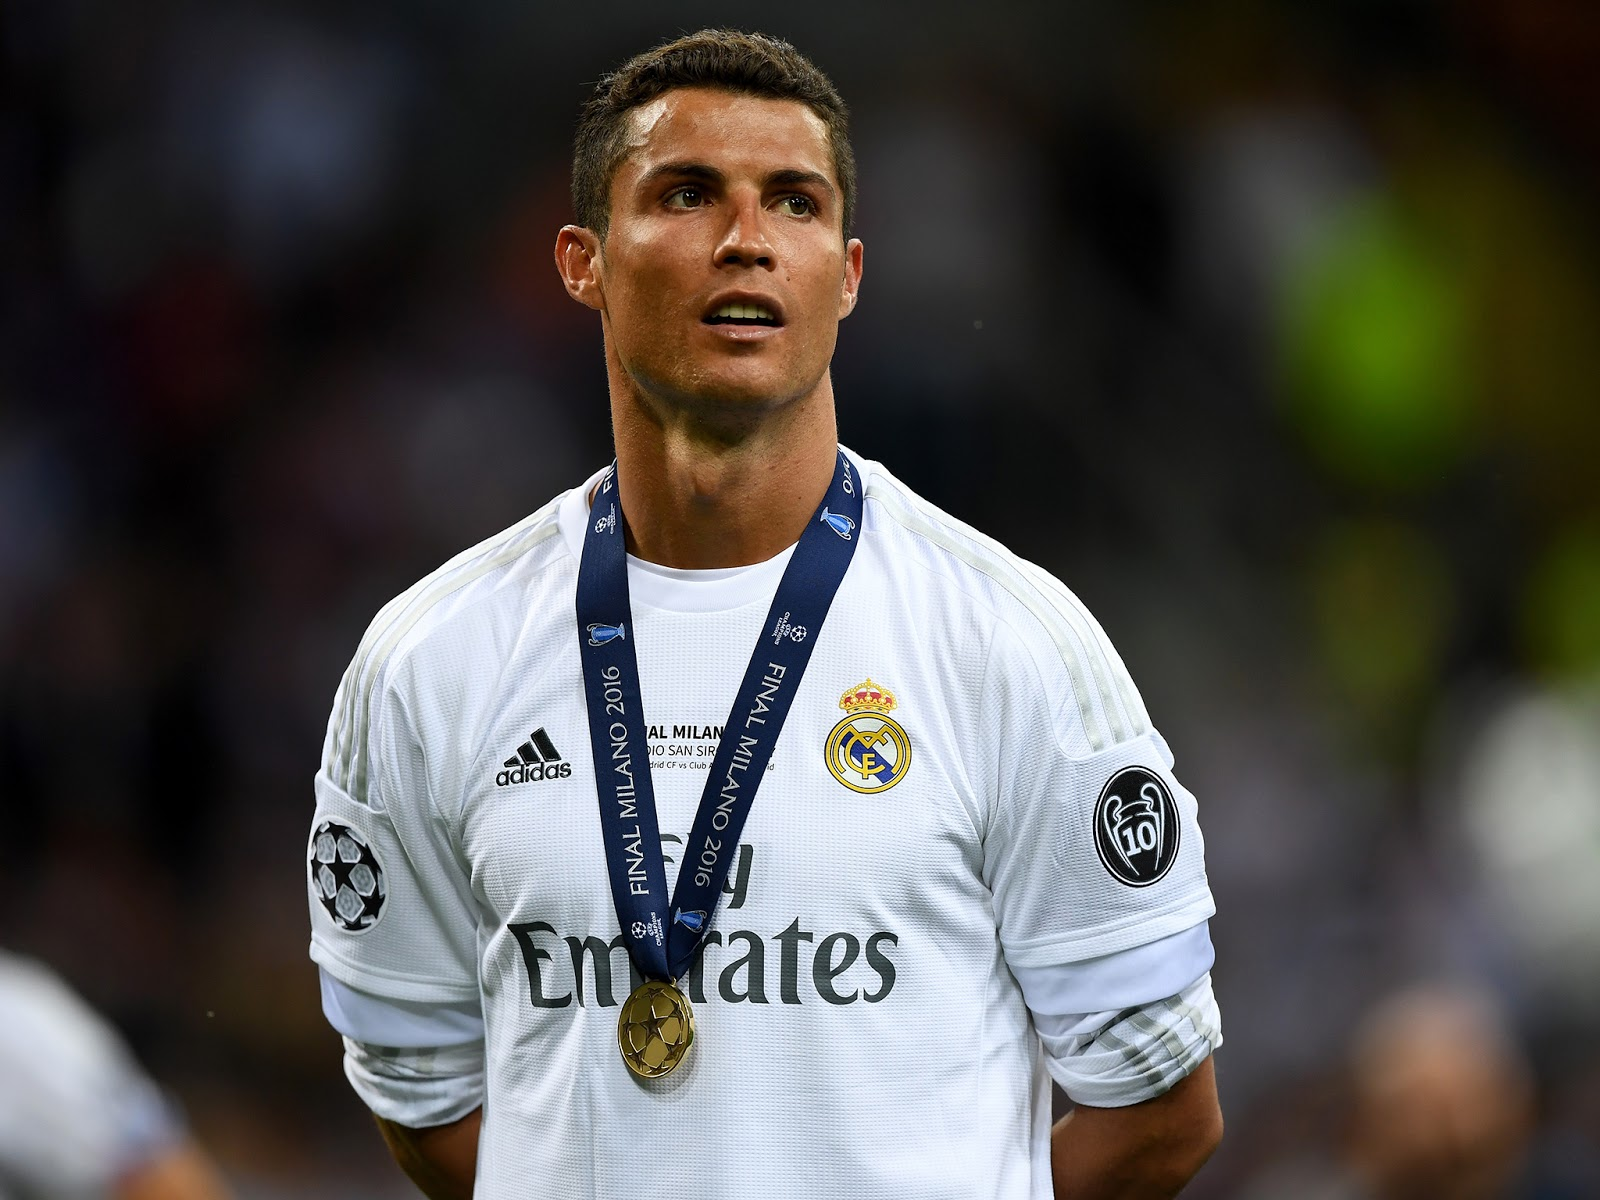 Cristiano ronaldo 4k wallpapers downloadcr7 wallpapers 2017 foto ronaldo 2017 1920x1080 cr7 8k wallpapers 2017 voltagebd Image collections